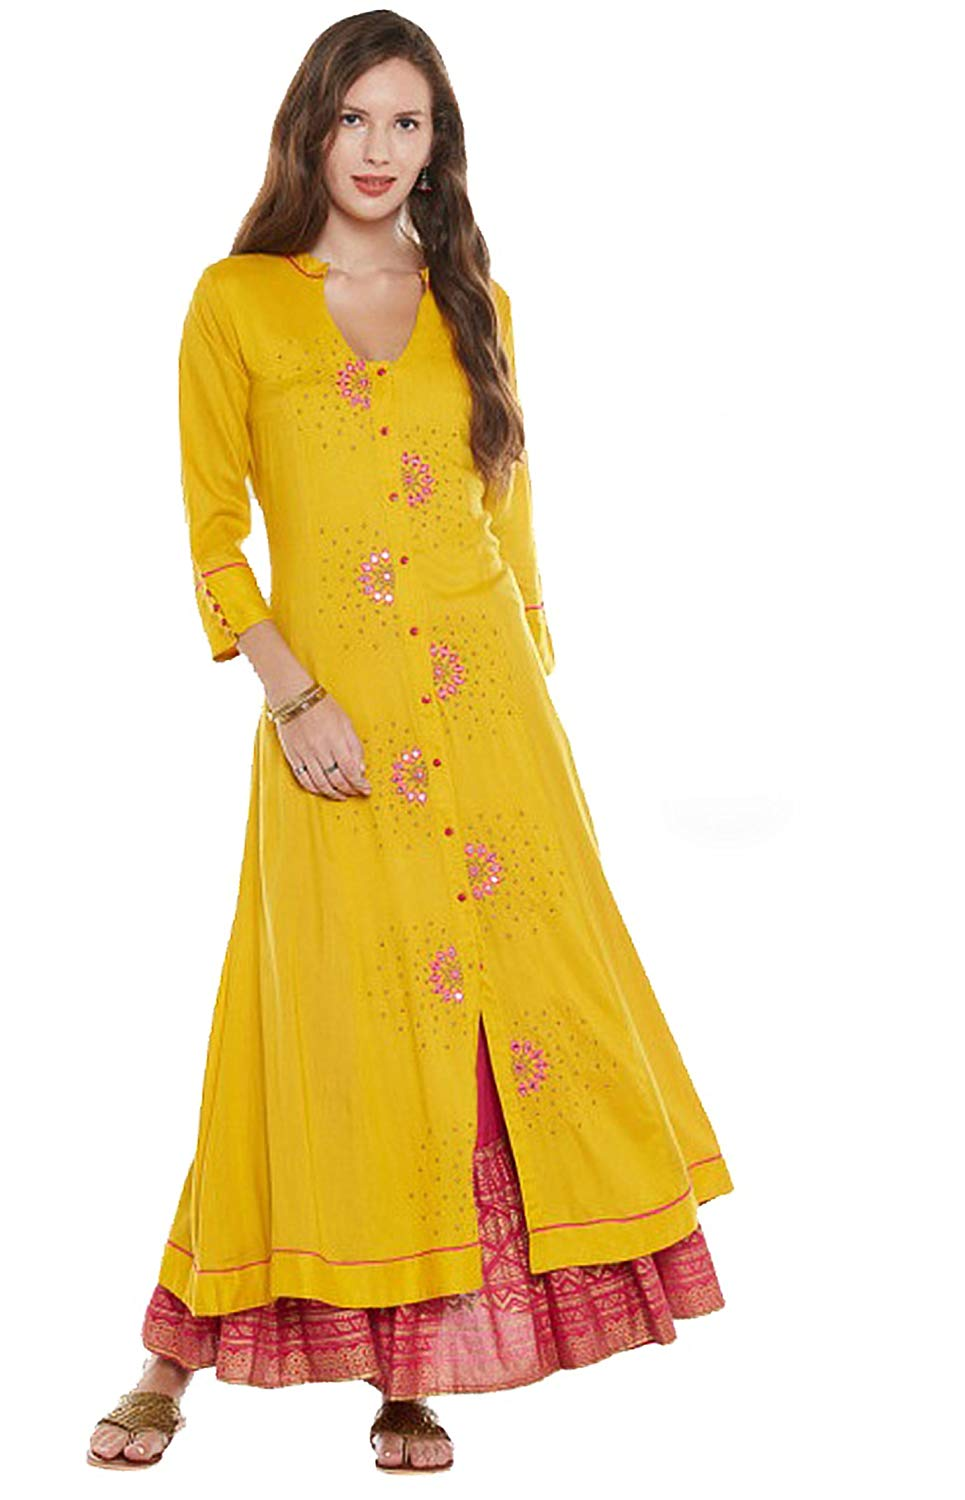 85c7cddb04c Buy Manas Crafts Designer Kurta Kurti Indian Ethnic Party Wear Women Dress  Top Tunic Blouse in Cheap Price on m.alibaba.com